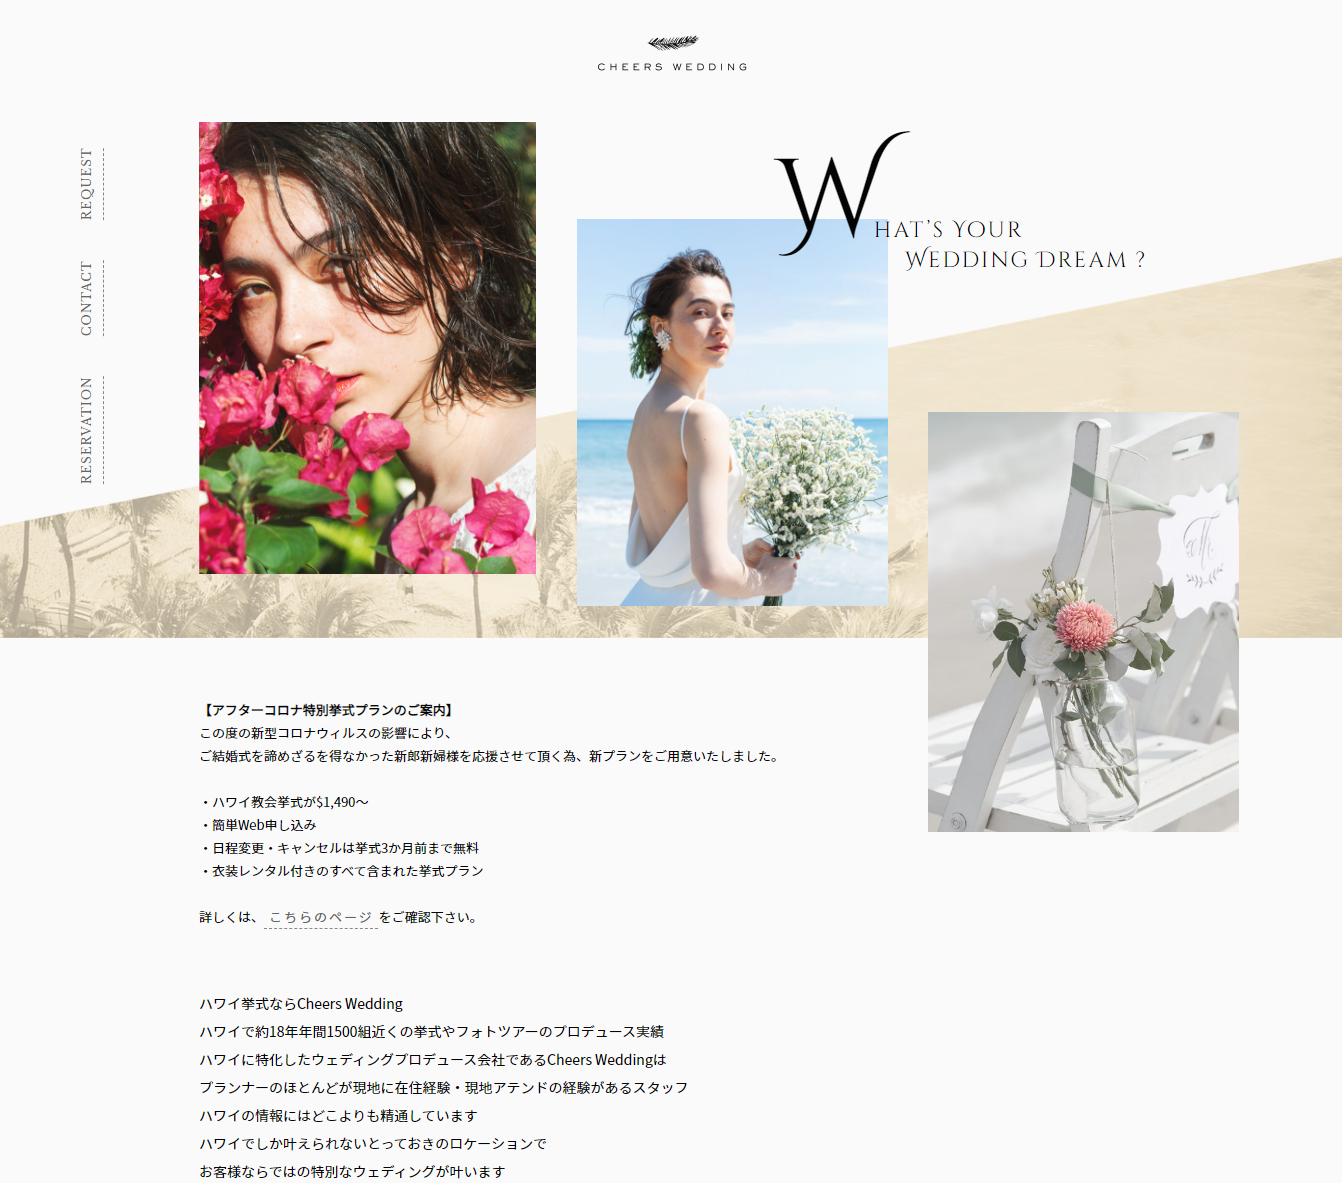 "<span class=""title"">チアーズウエディング(Cheeers Wedding)の口コミや評判</span>"